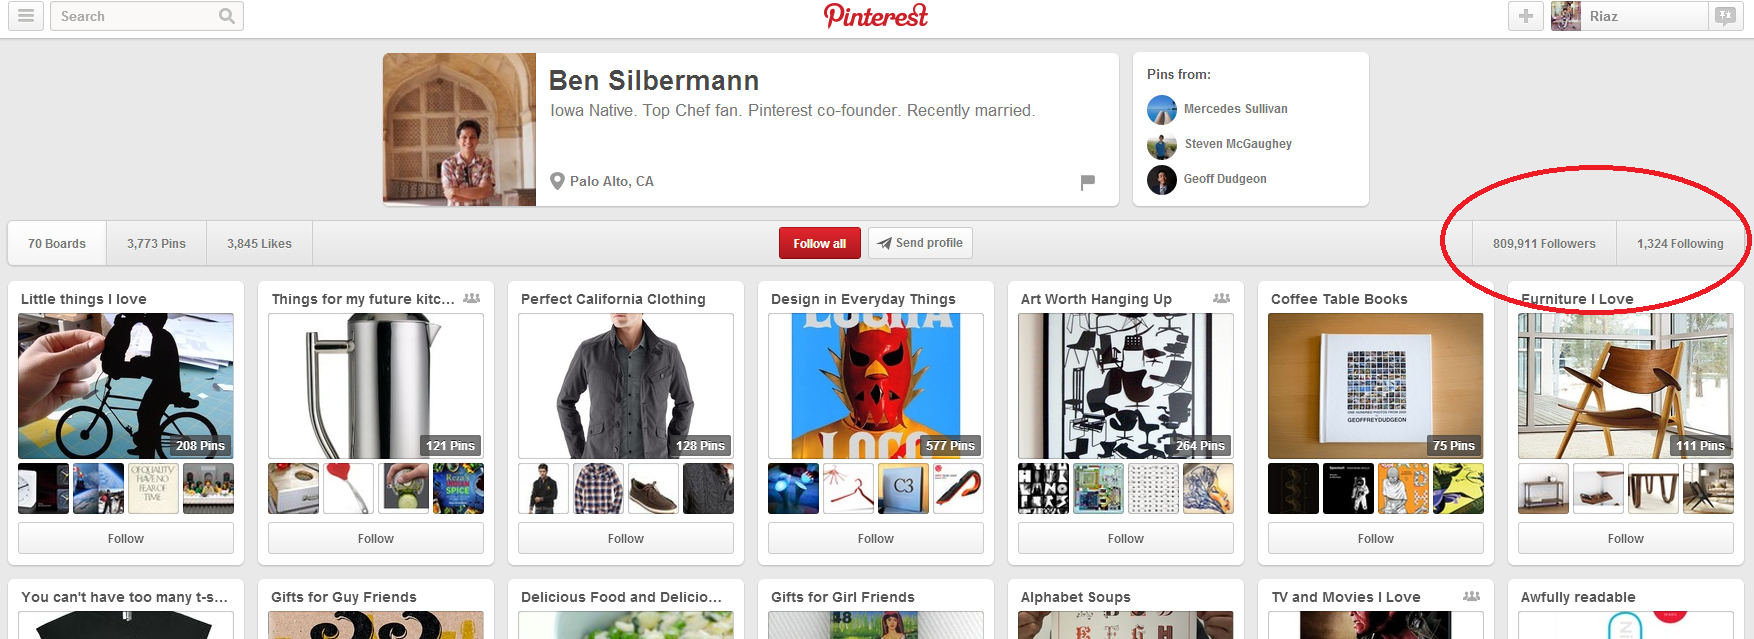 Ben Silbermann's Pinterest